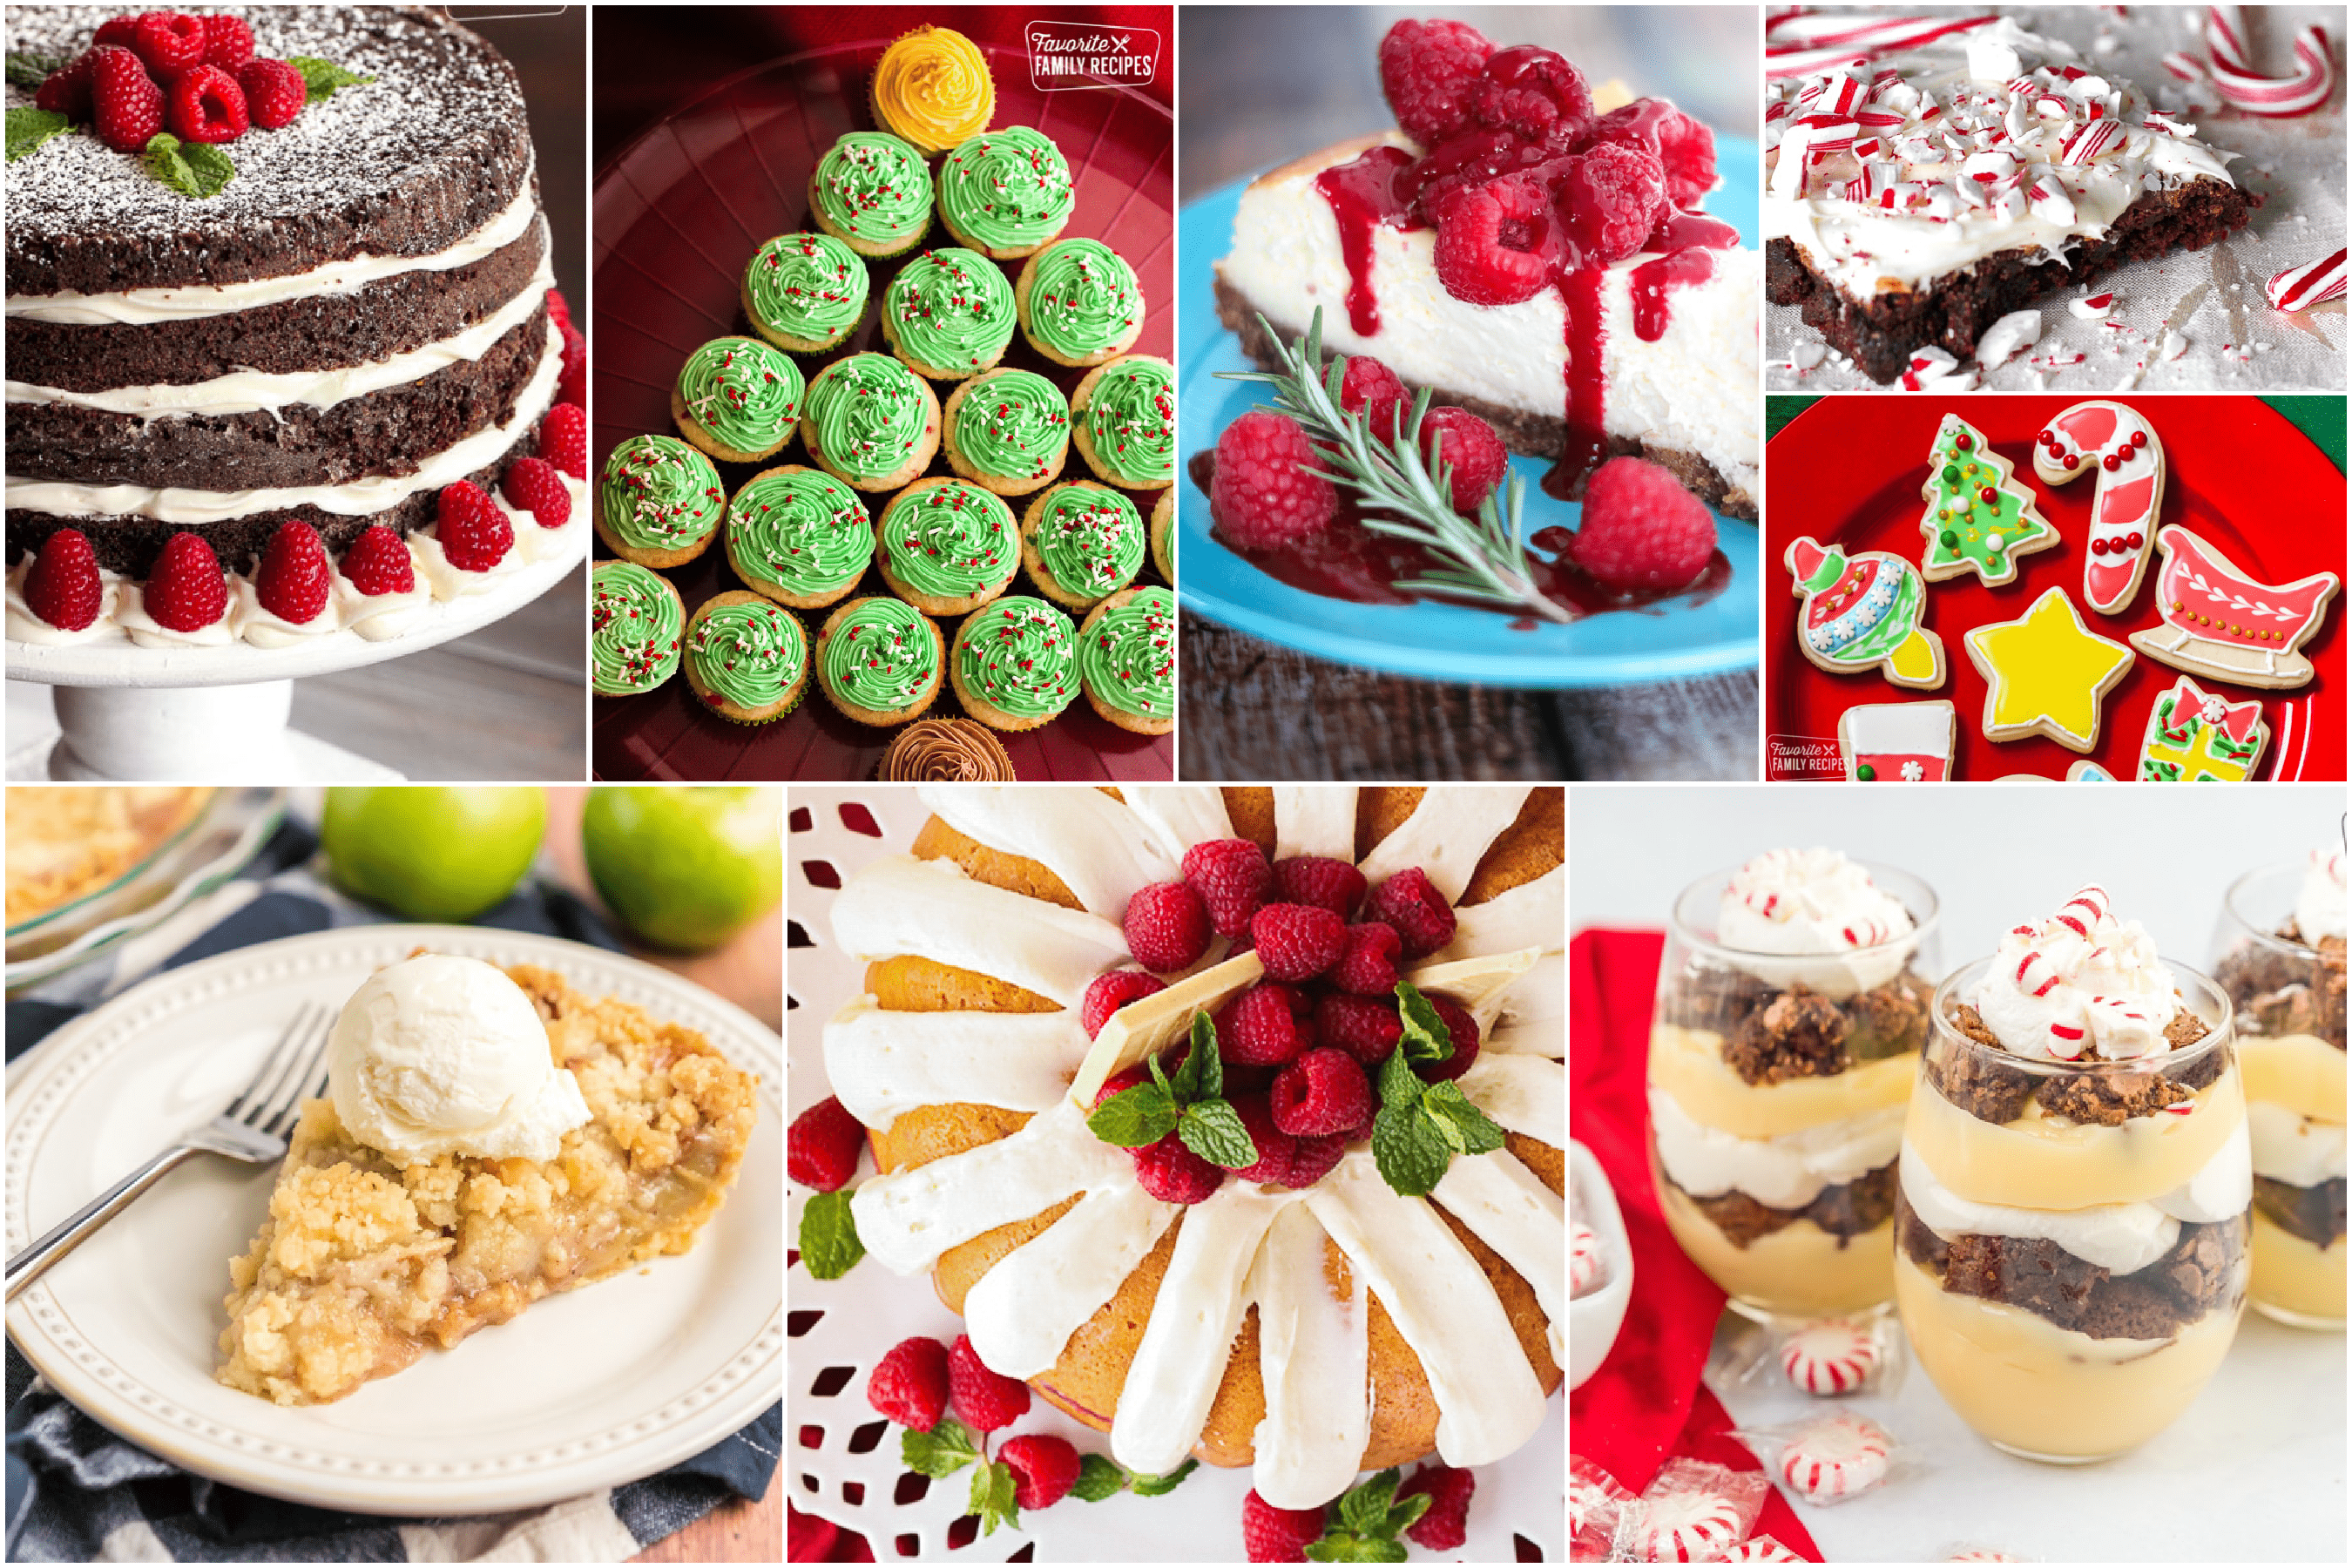 Collage of colorful Christmas desserts such as cakes, cupcakes, cheesecakes, and more!